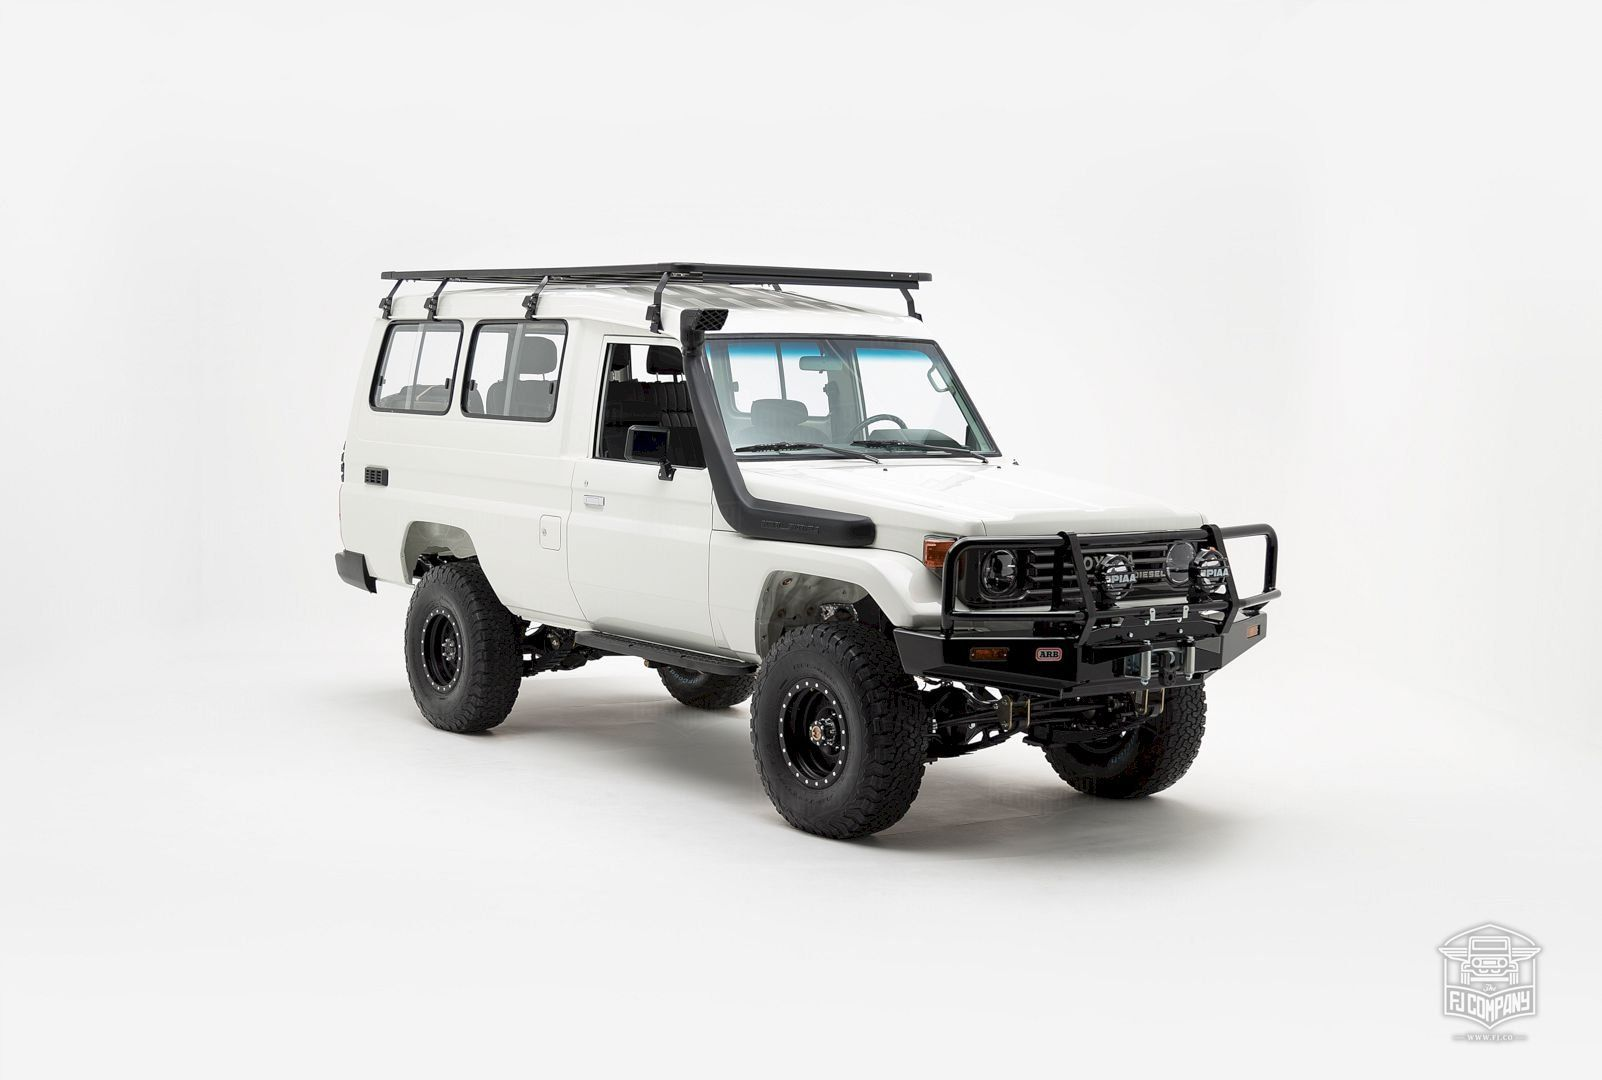 1992 Toyota Land Cruiser Hzj75 The Redefinition Of Family Overlander Land Cruiser Toyota Land Cruiser Cruisers